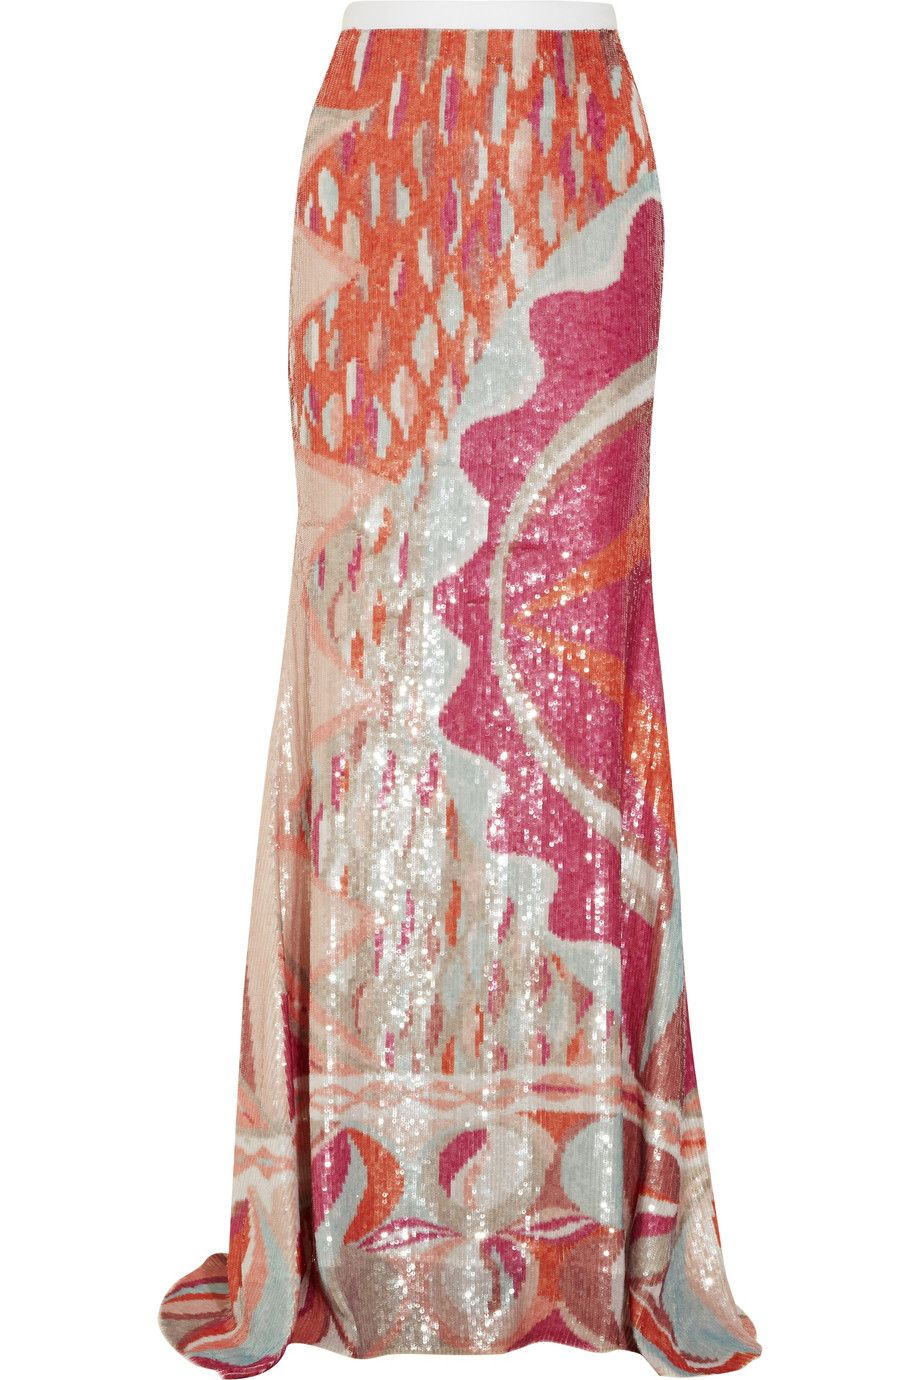 Women's Sequined Silk Maxi Skirt | Pucci and Emilio pucci